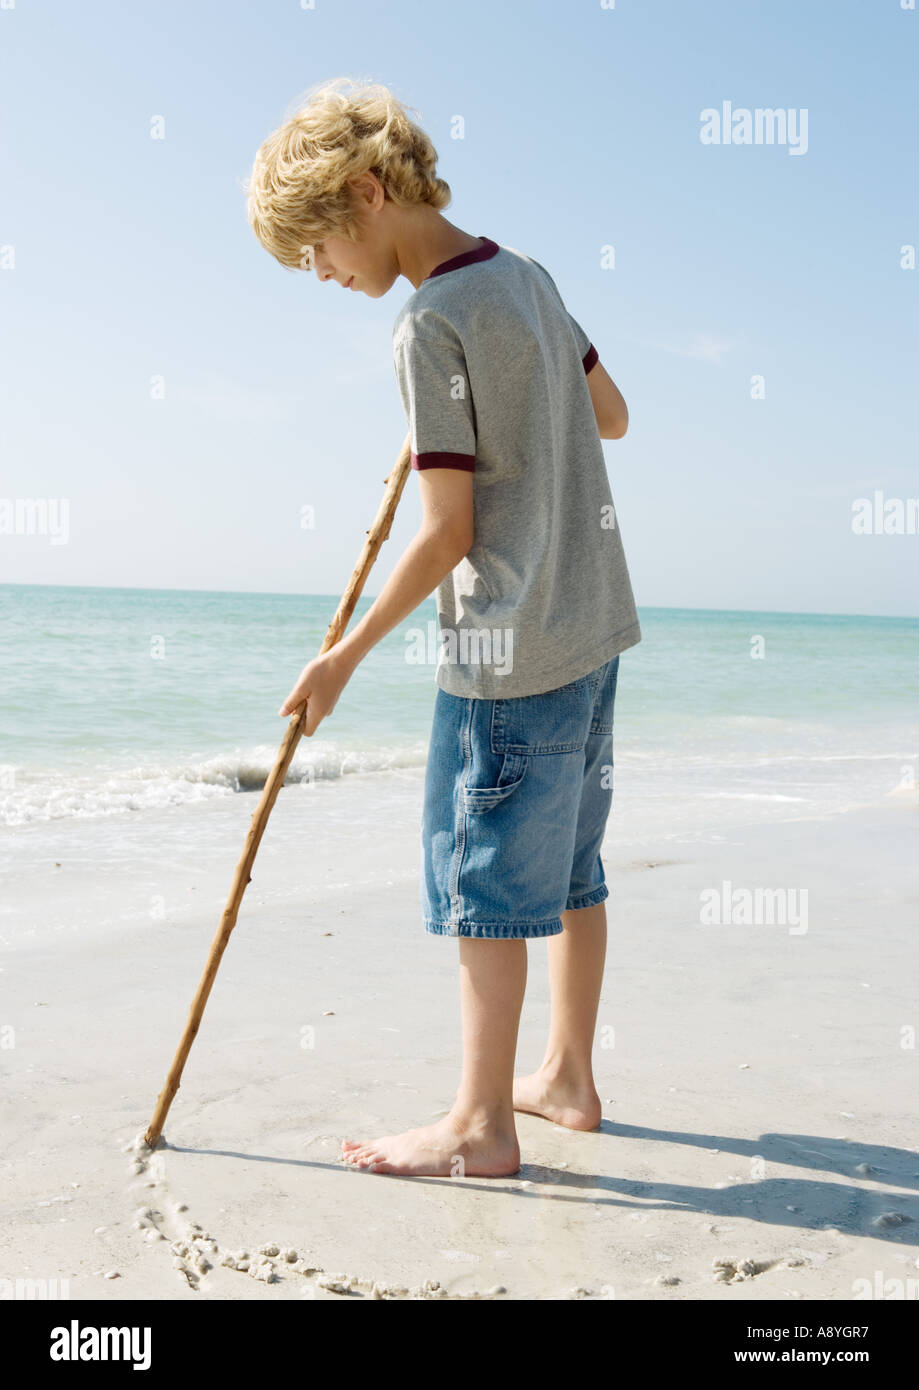 Boy drawing with stick on sand - Stock Image